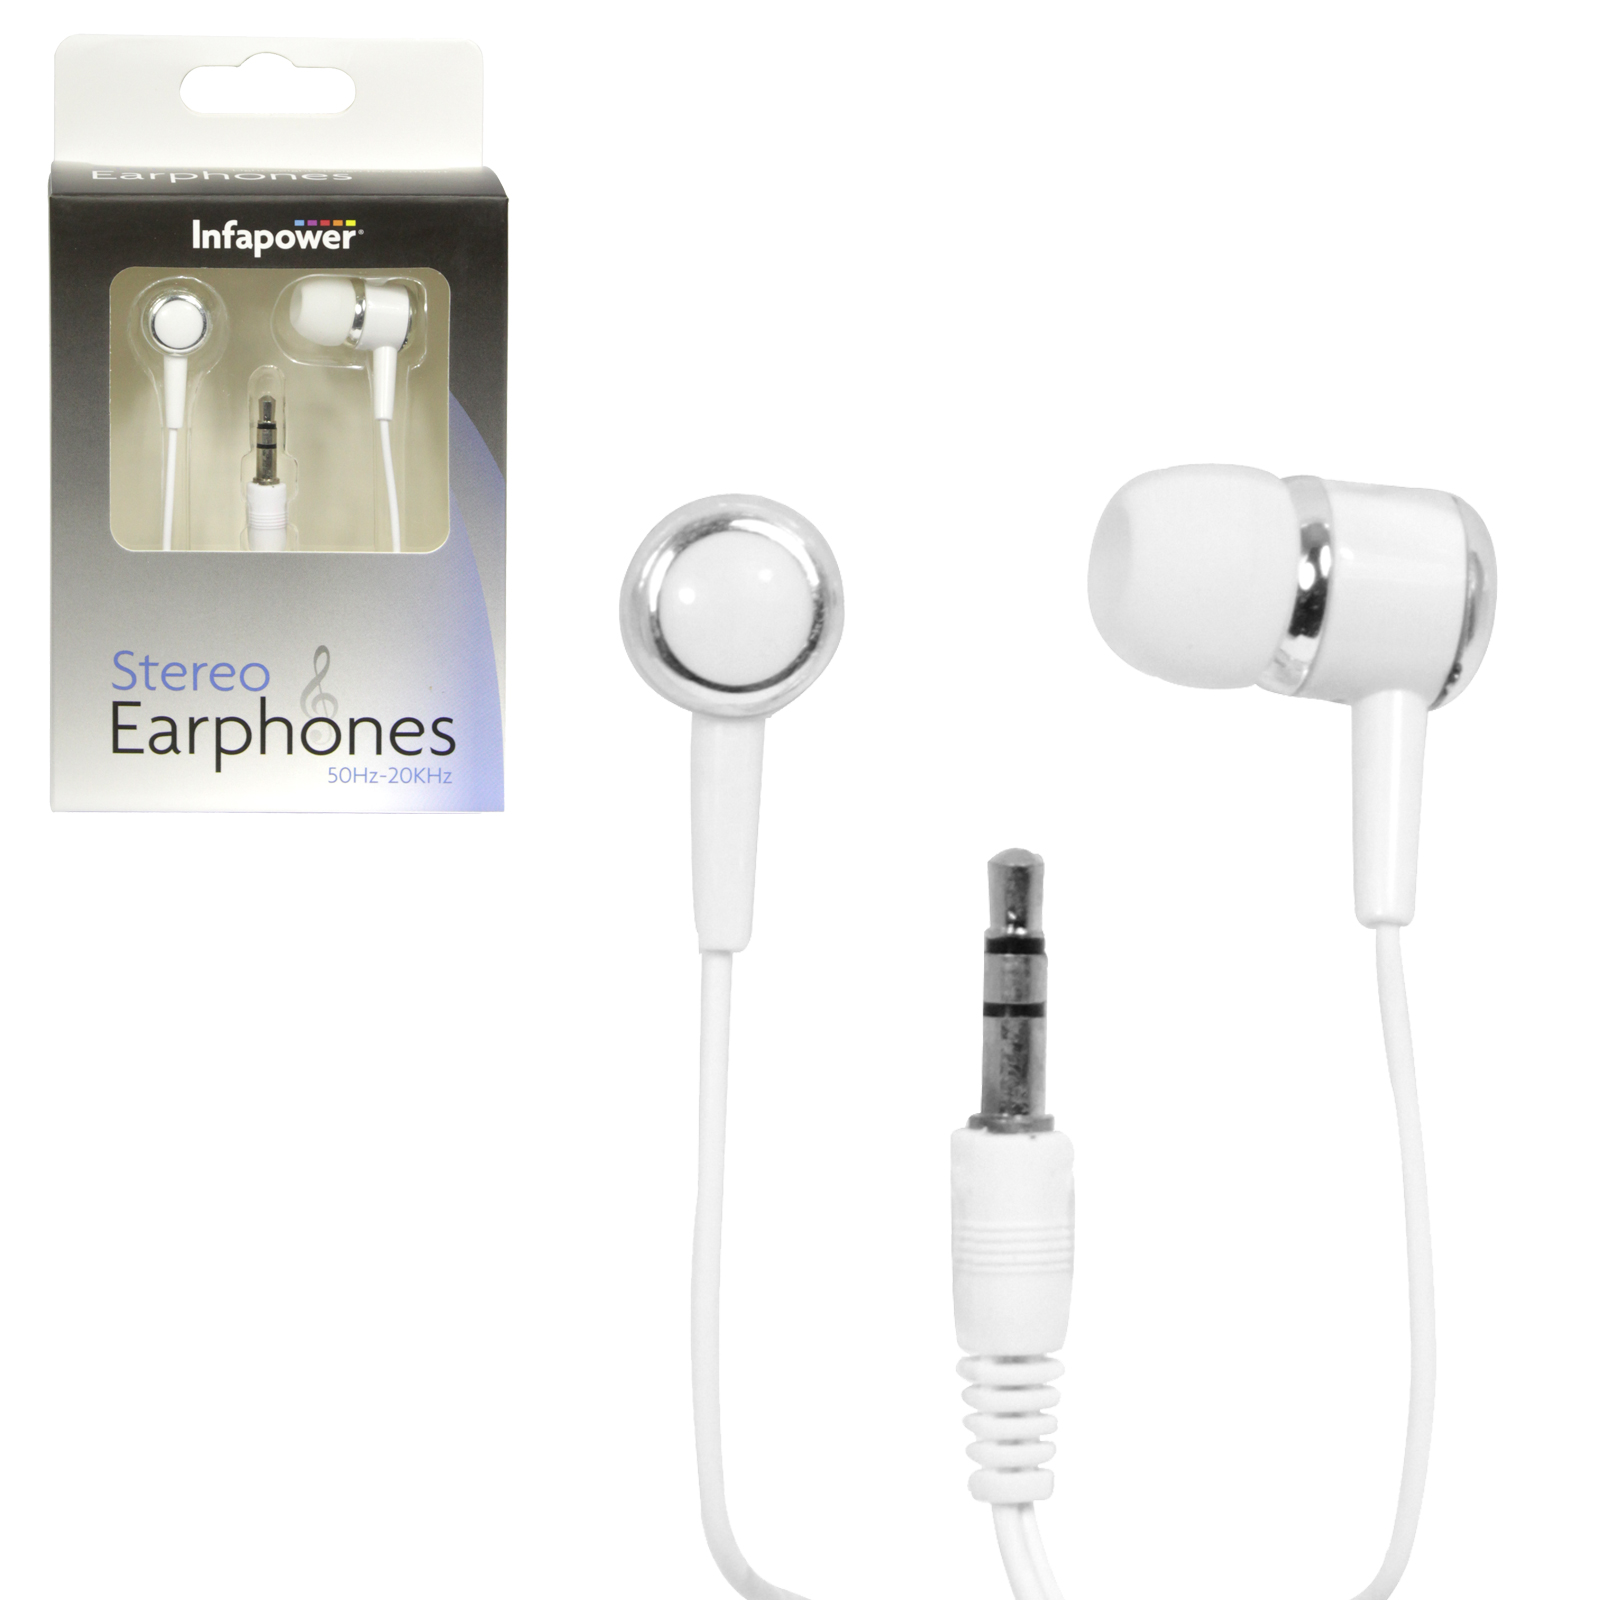 INFAPOWER STEREO EARPHONES WIRED WHITE